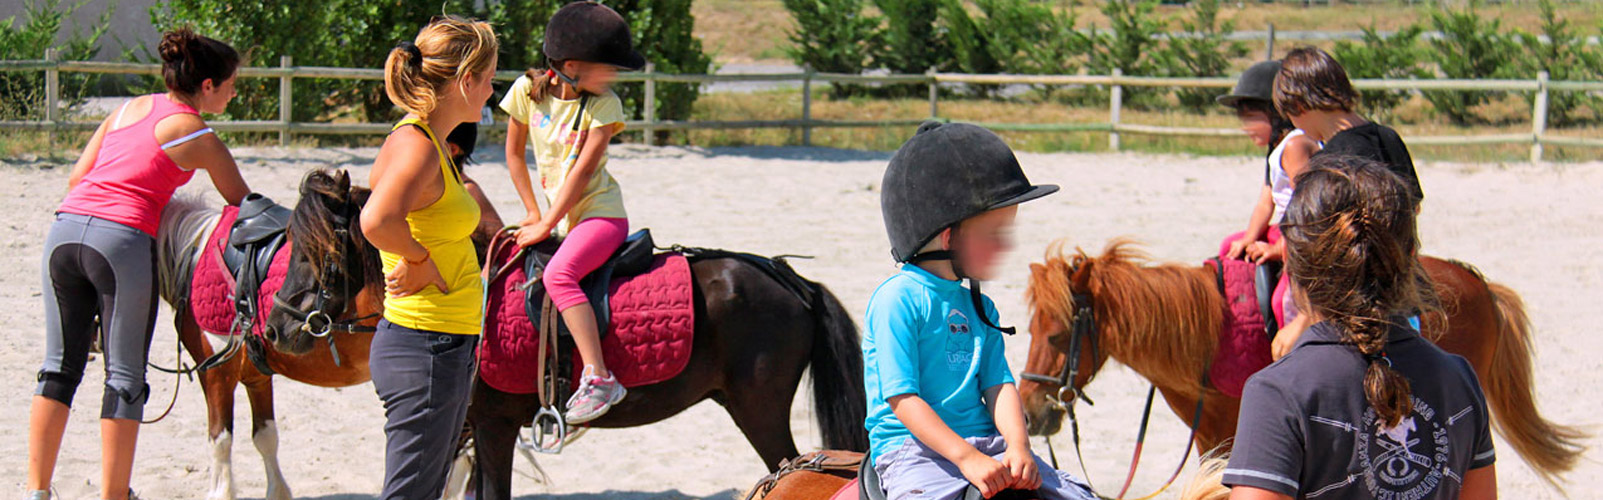 camping-carcassonne-activites